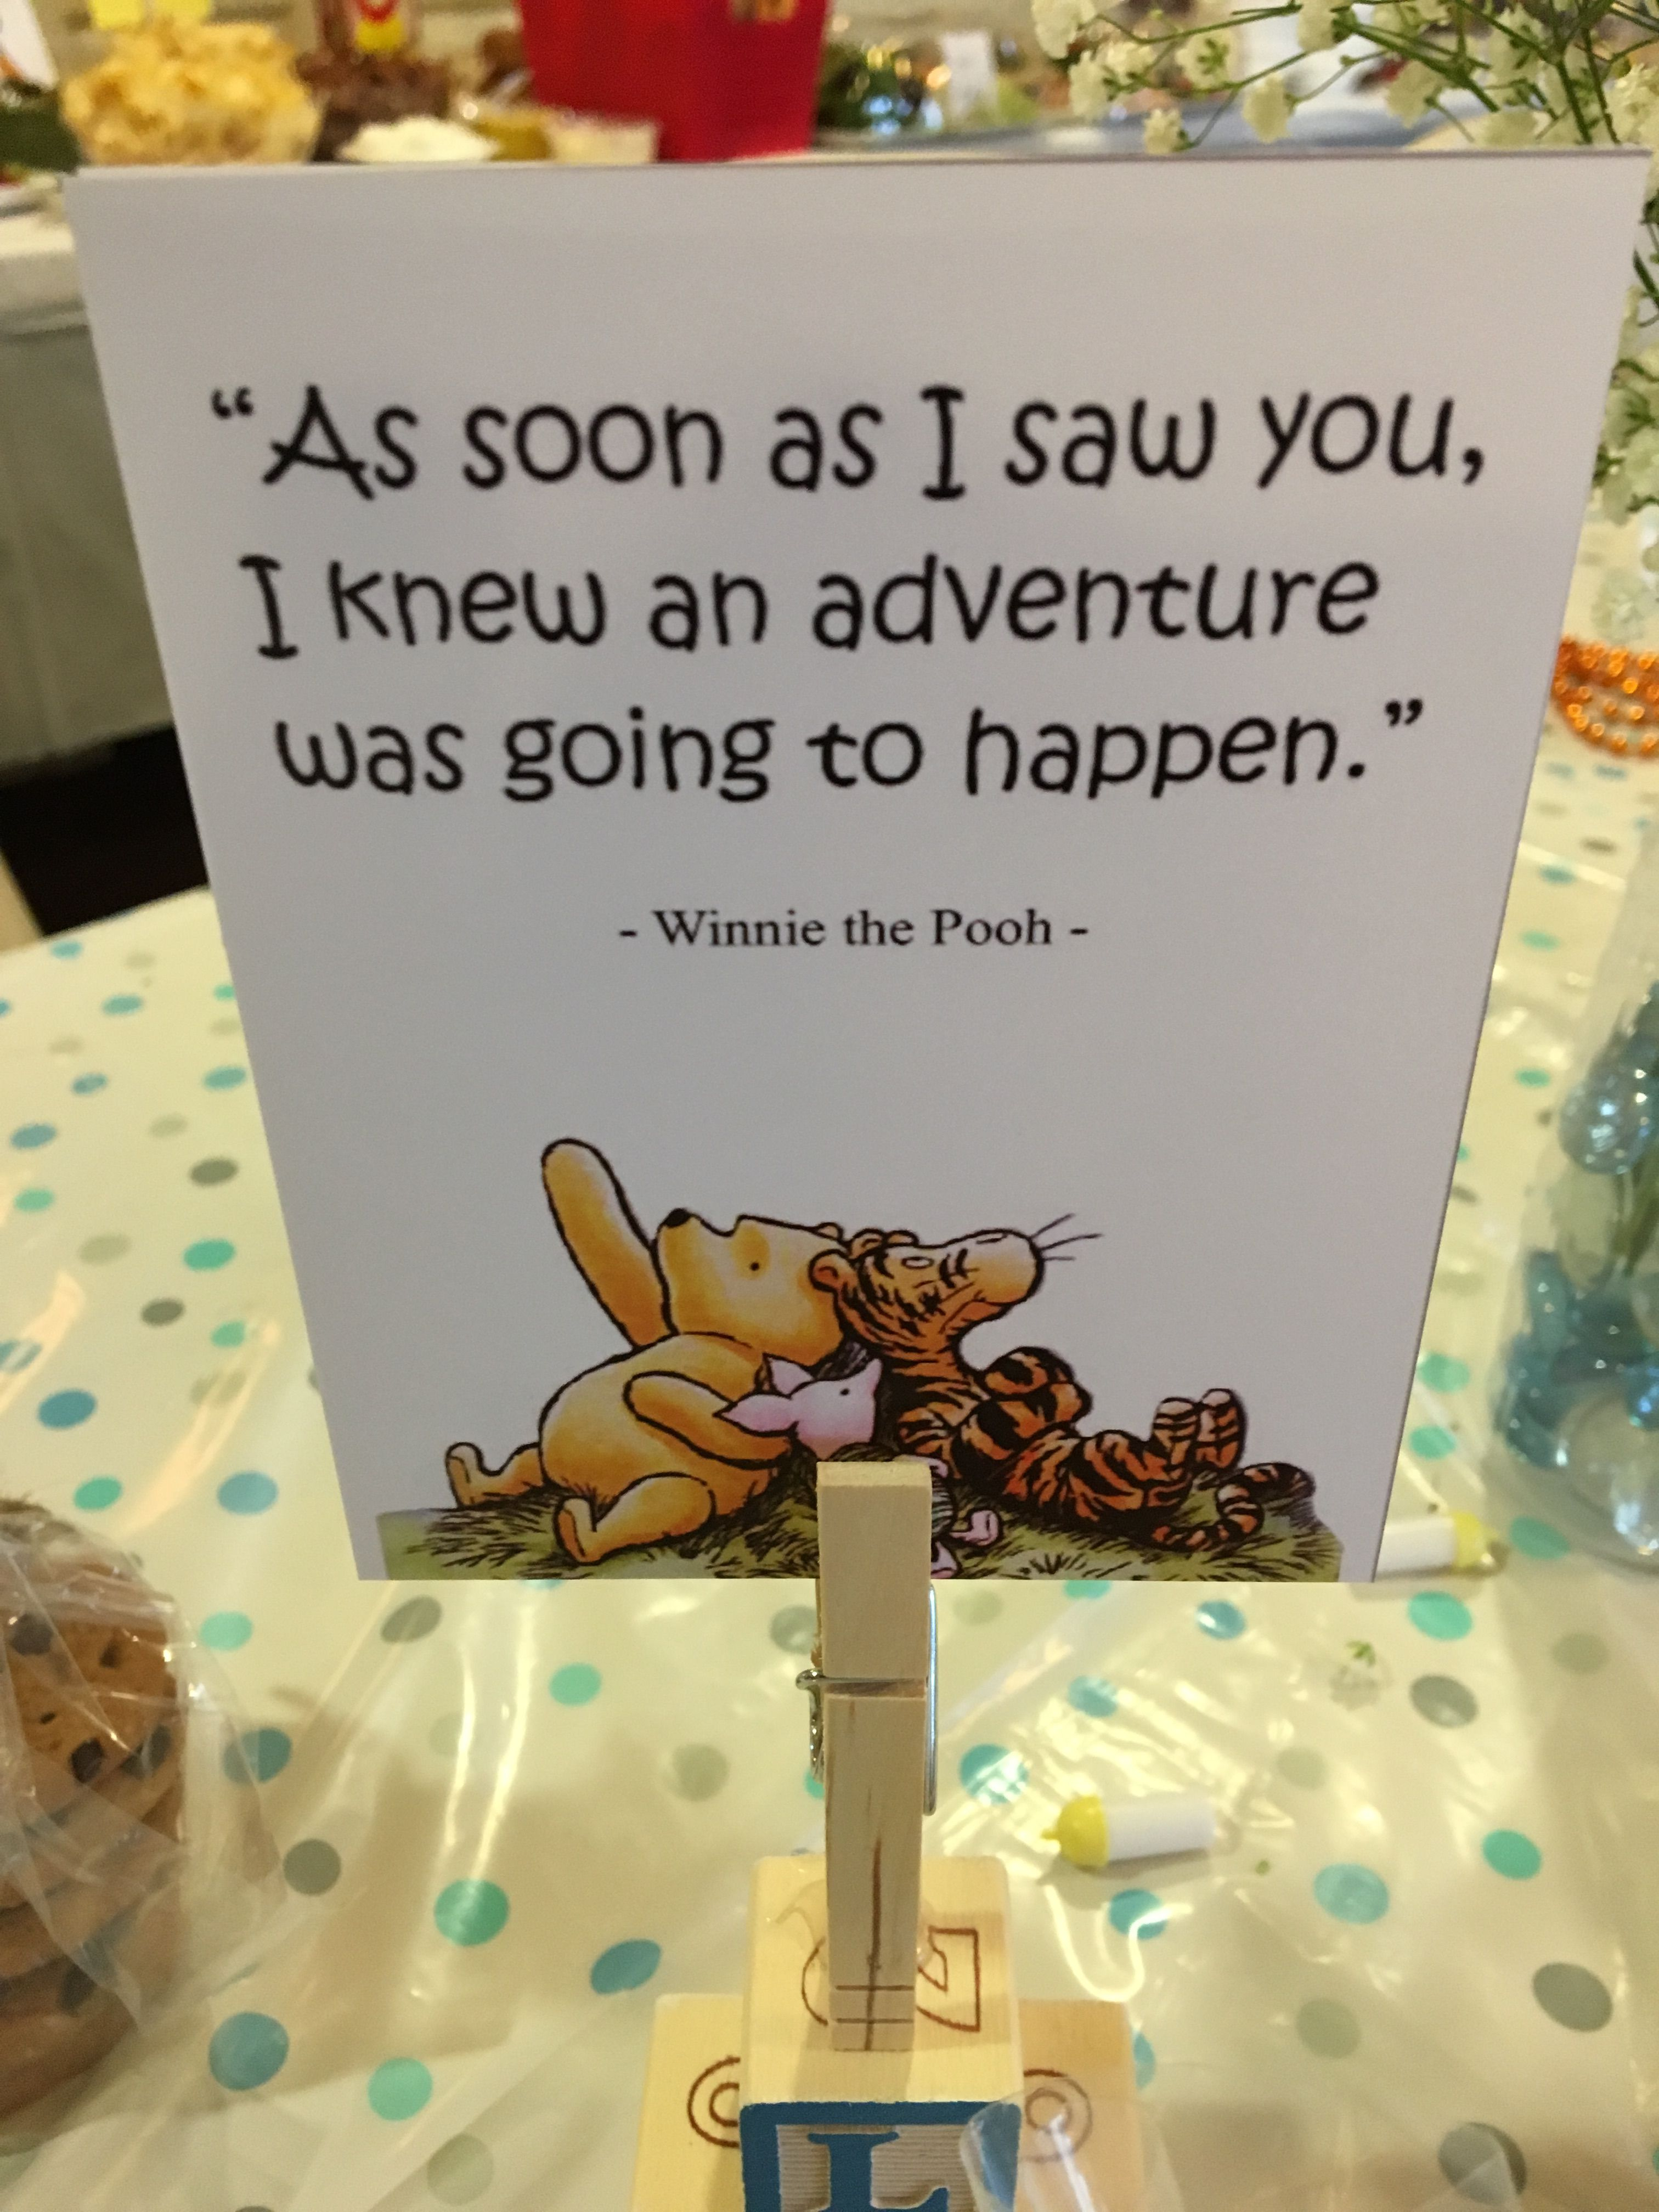 Winnie The Pooh Baby Shower Quotes : winnie, shower, quotes, Storybook, Themed, Shower, Quote, Centerpiece, Winnie, #poohbear, Disney, Shower,, Quotes